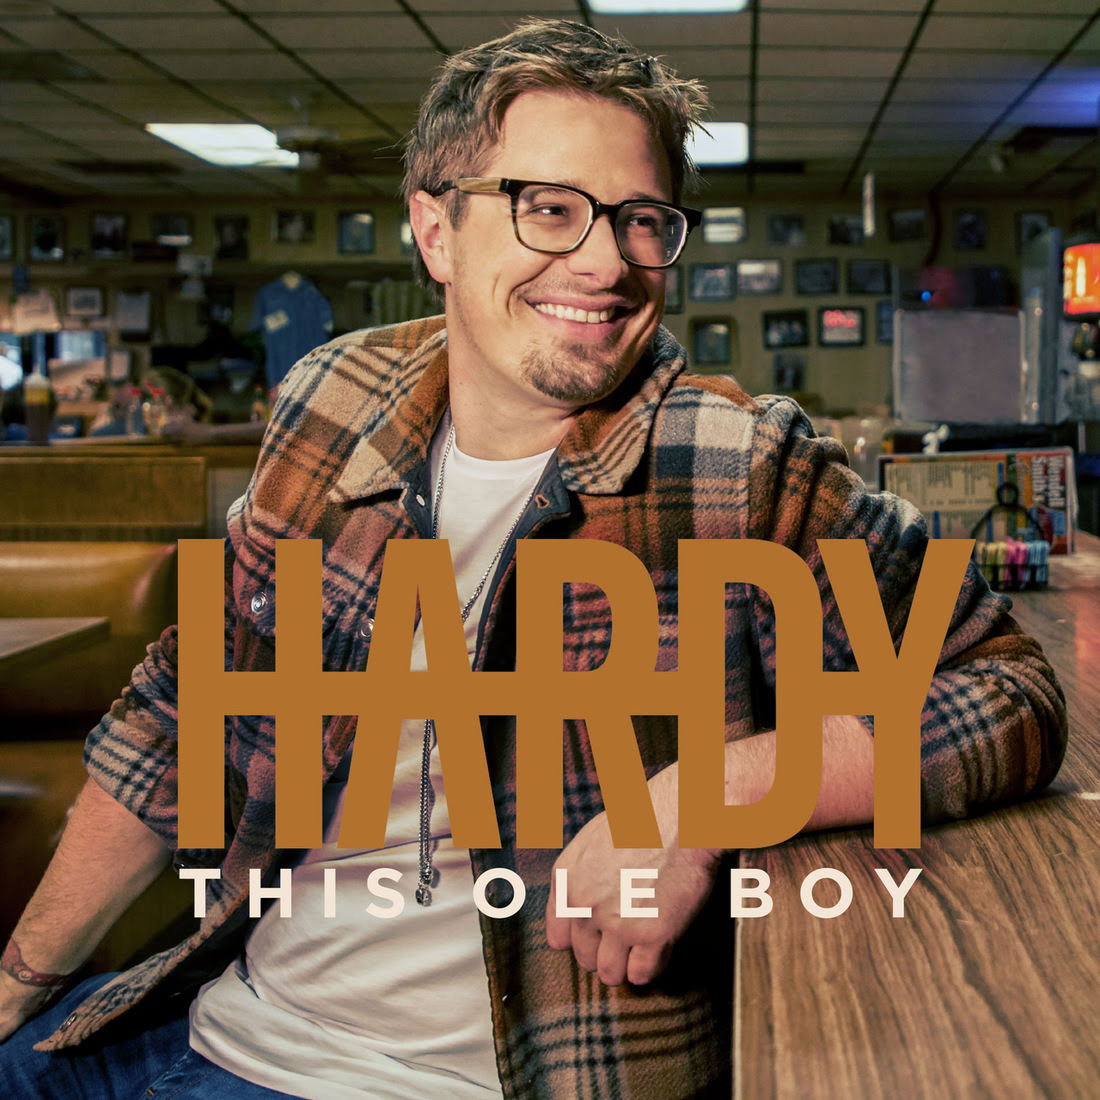 Hardy - THIS OLE BOY